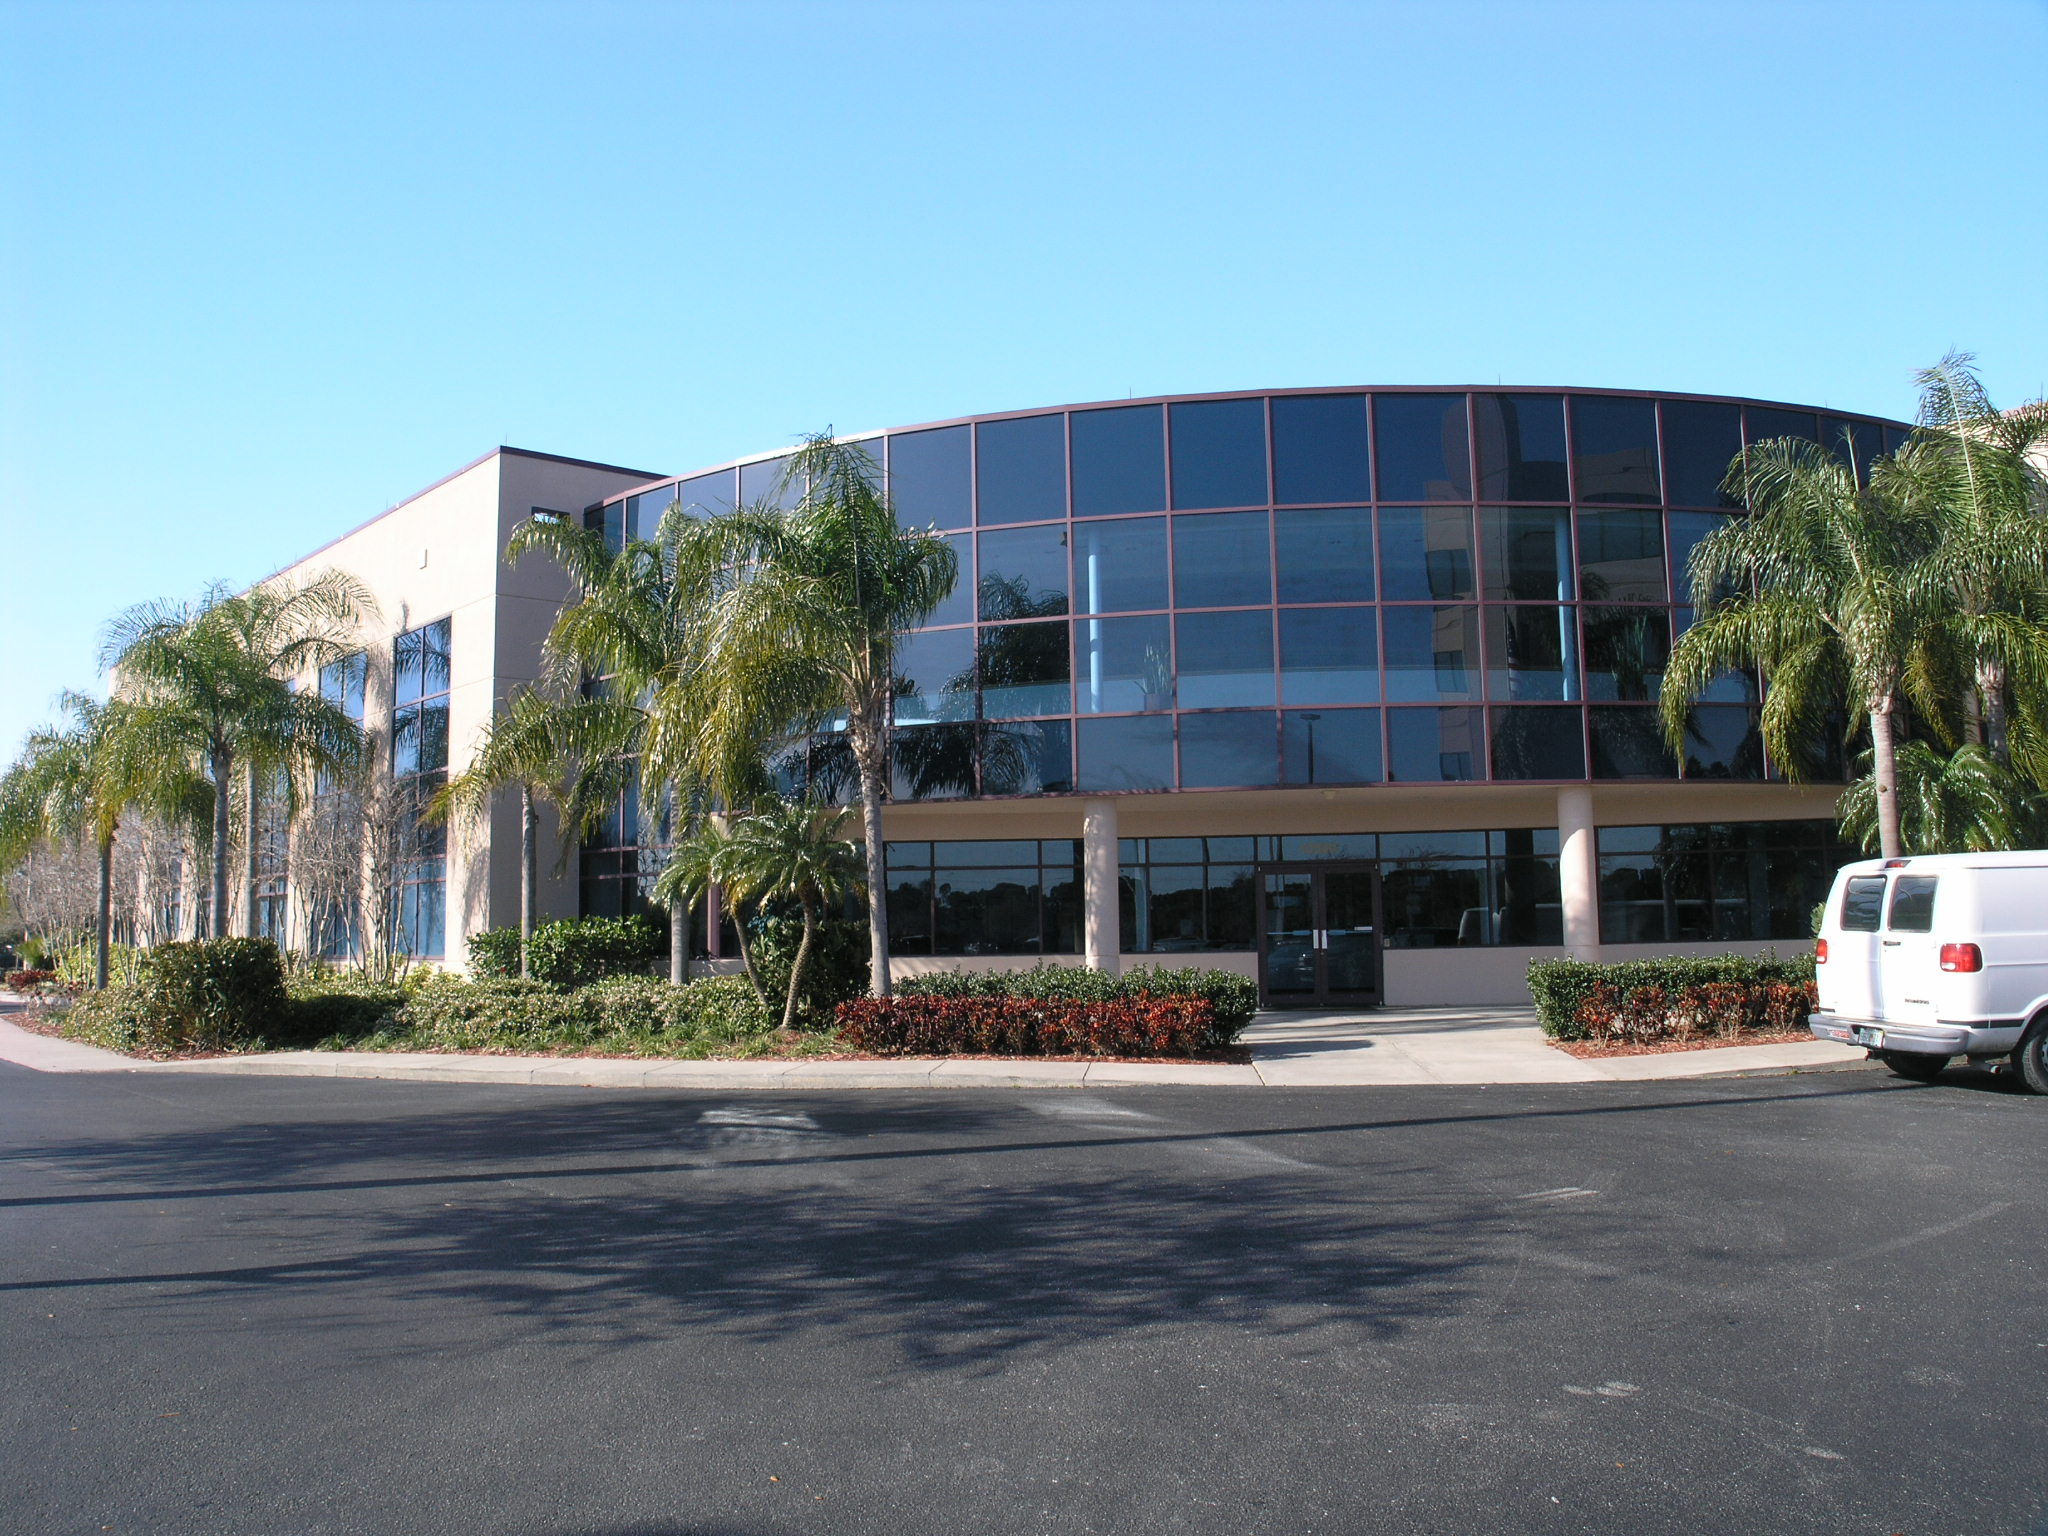 Jabil Circuit Headquarters and High Tech Manufacturing Facility, St. Petersburg, Florida - Appraisal Services